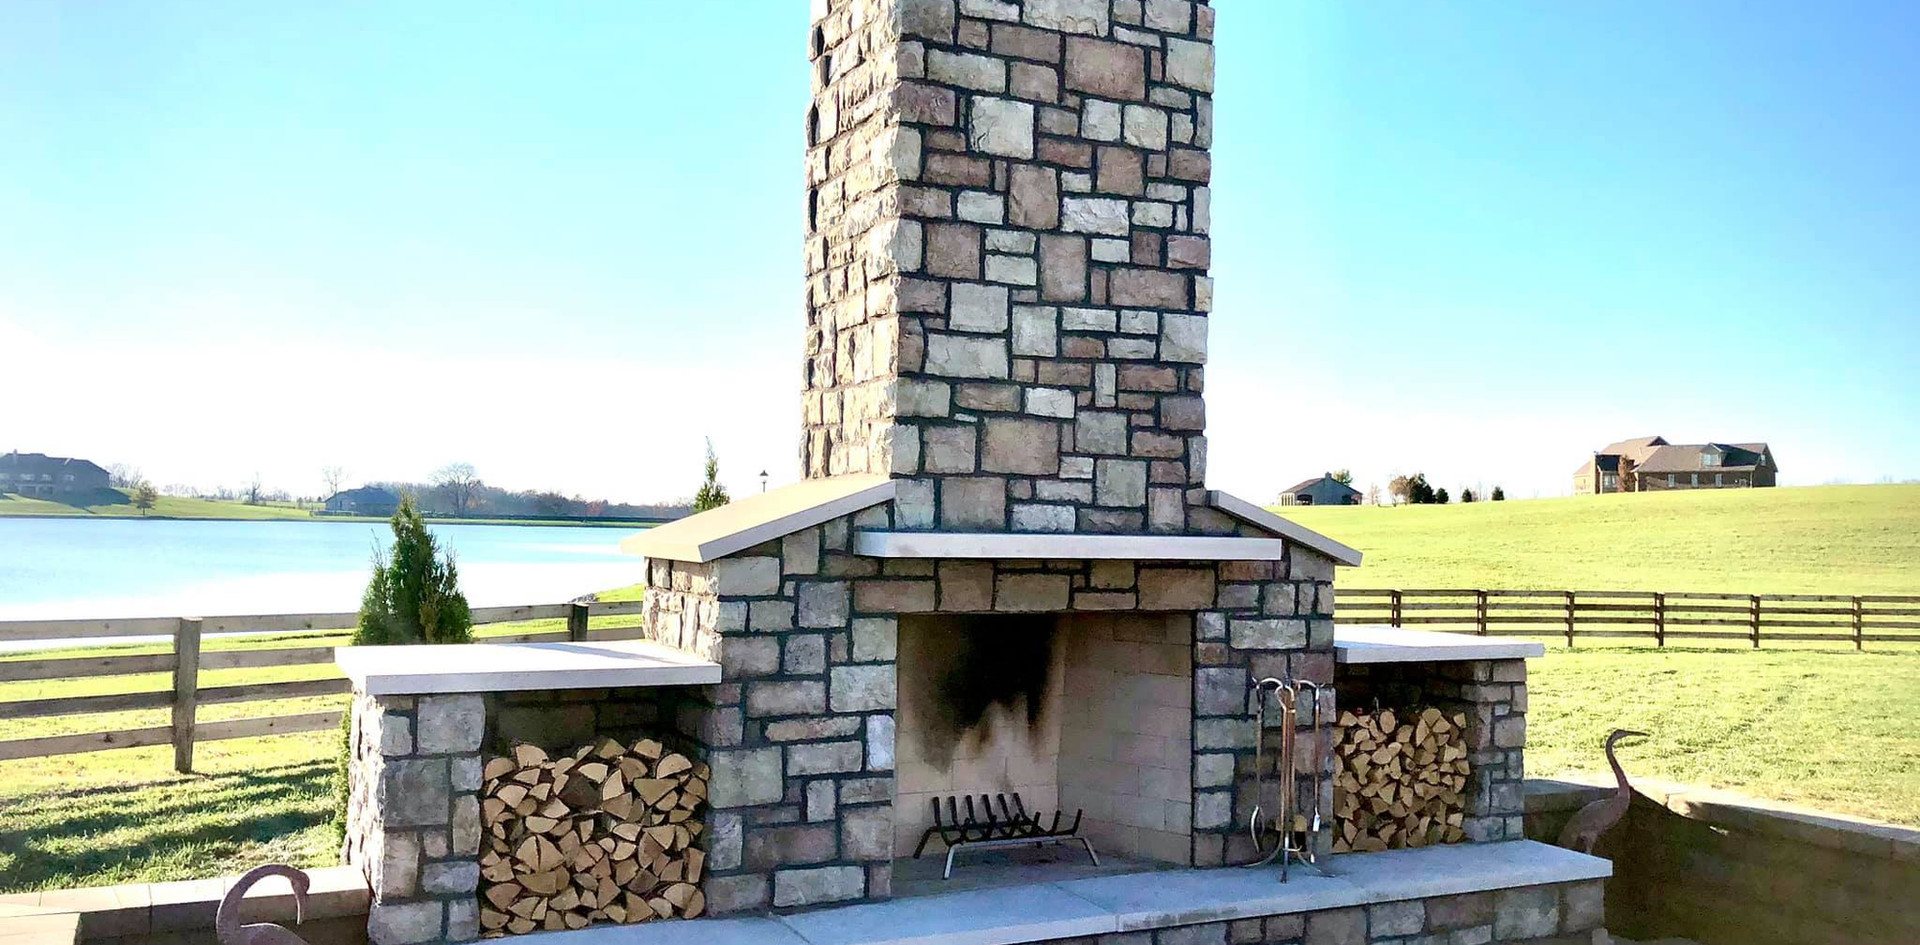 THE FINISHED OUTDOOR FIREPLACE WITH WOODBOXES AND HEARTH